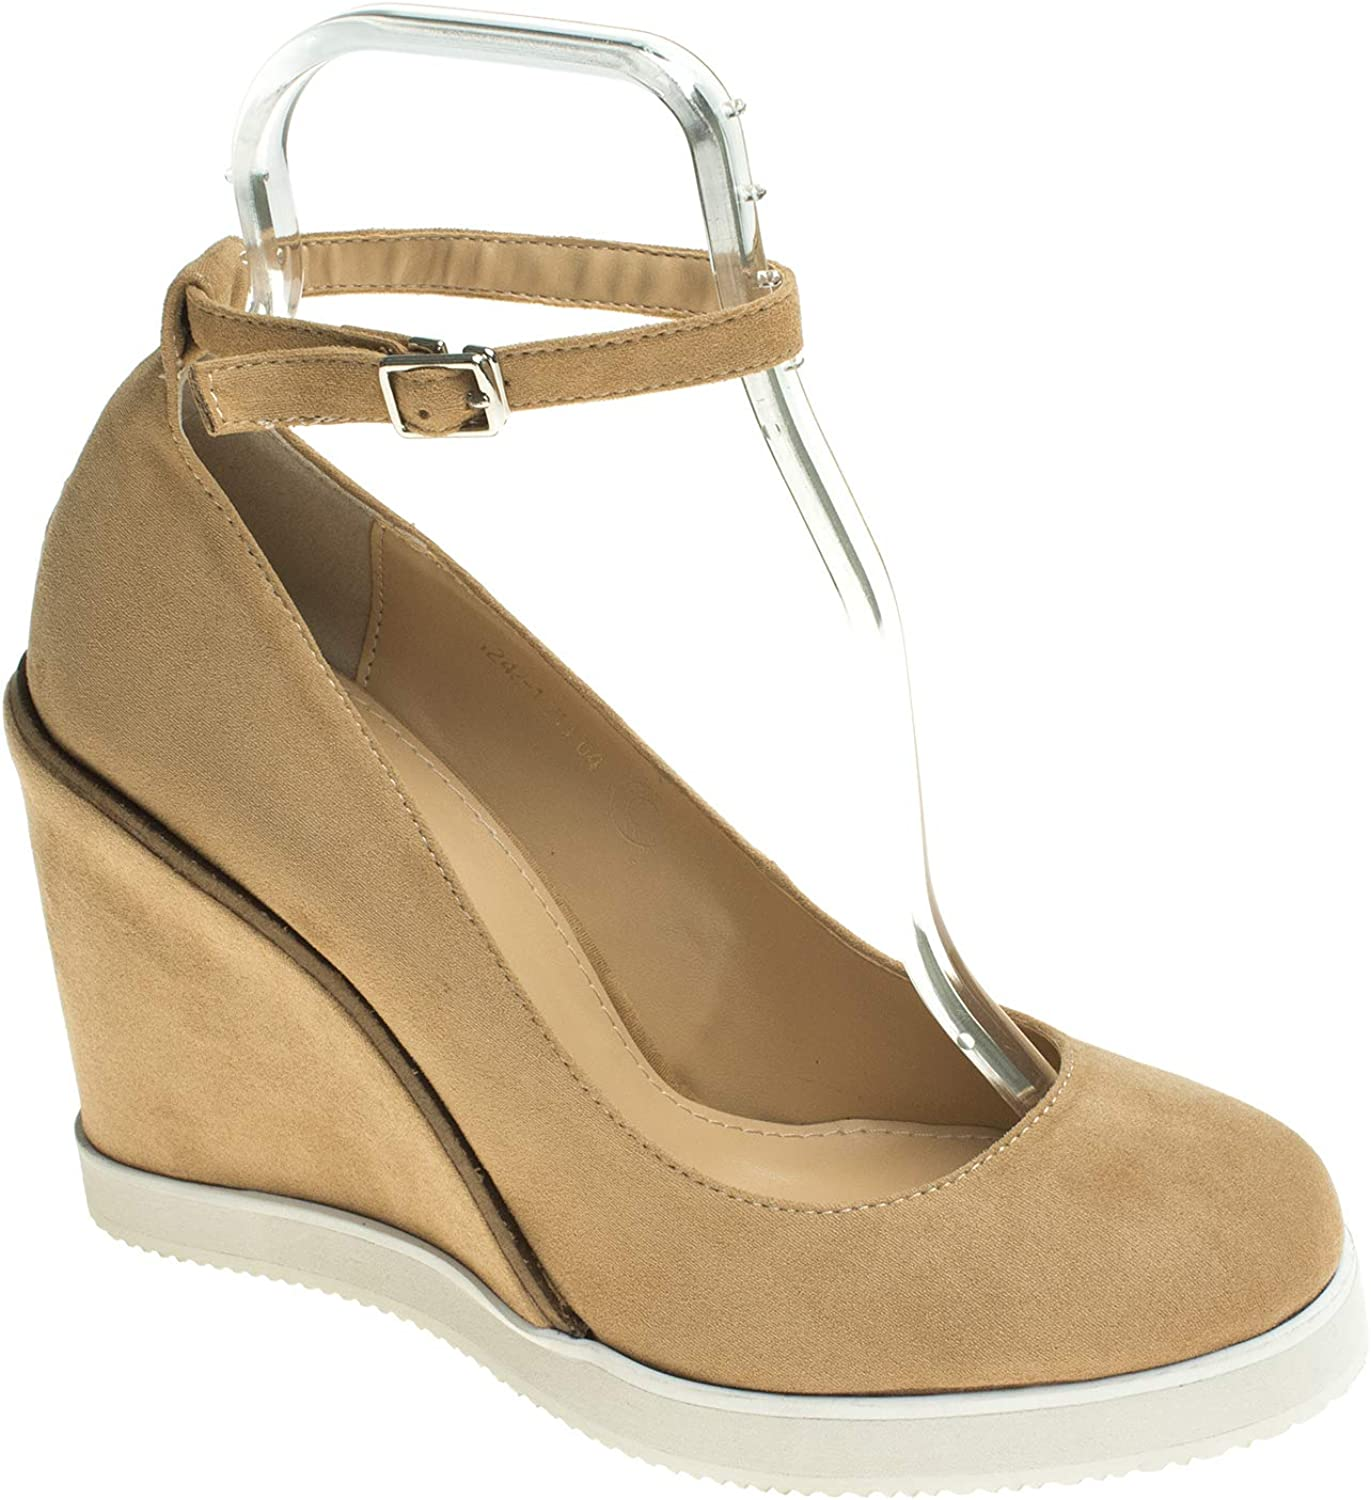 AnnaKastle Womens Vegan Suede Round Toe Ankle Strap Wedge Pumps